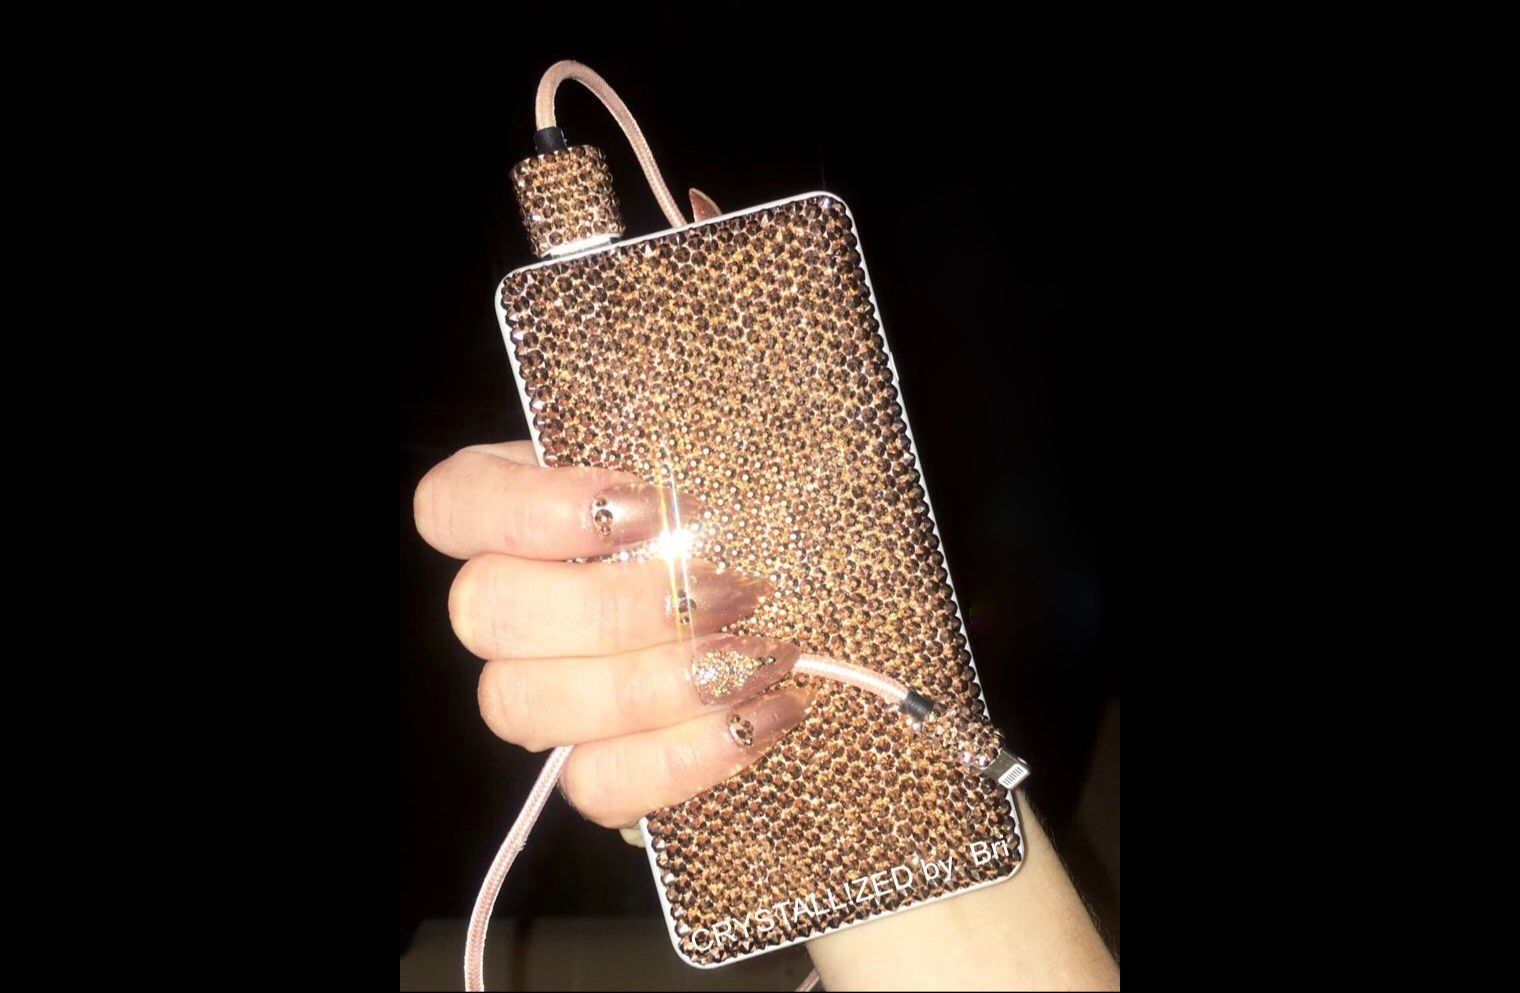 Buy Custom Made Crystallized Wireless Iphone Usb Portable Battery Pack Charger W Swarovski Crystals Bedazzled Mophie Made To Order From Crystall Zed By Bri Llc Custommade Com A chess piece, or chessman, is any of the six different types of movable objects used on a chessboard to play the game of chess. buy custom made crystallized wireless